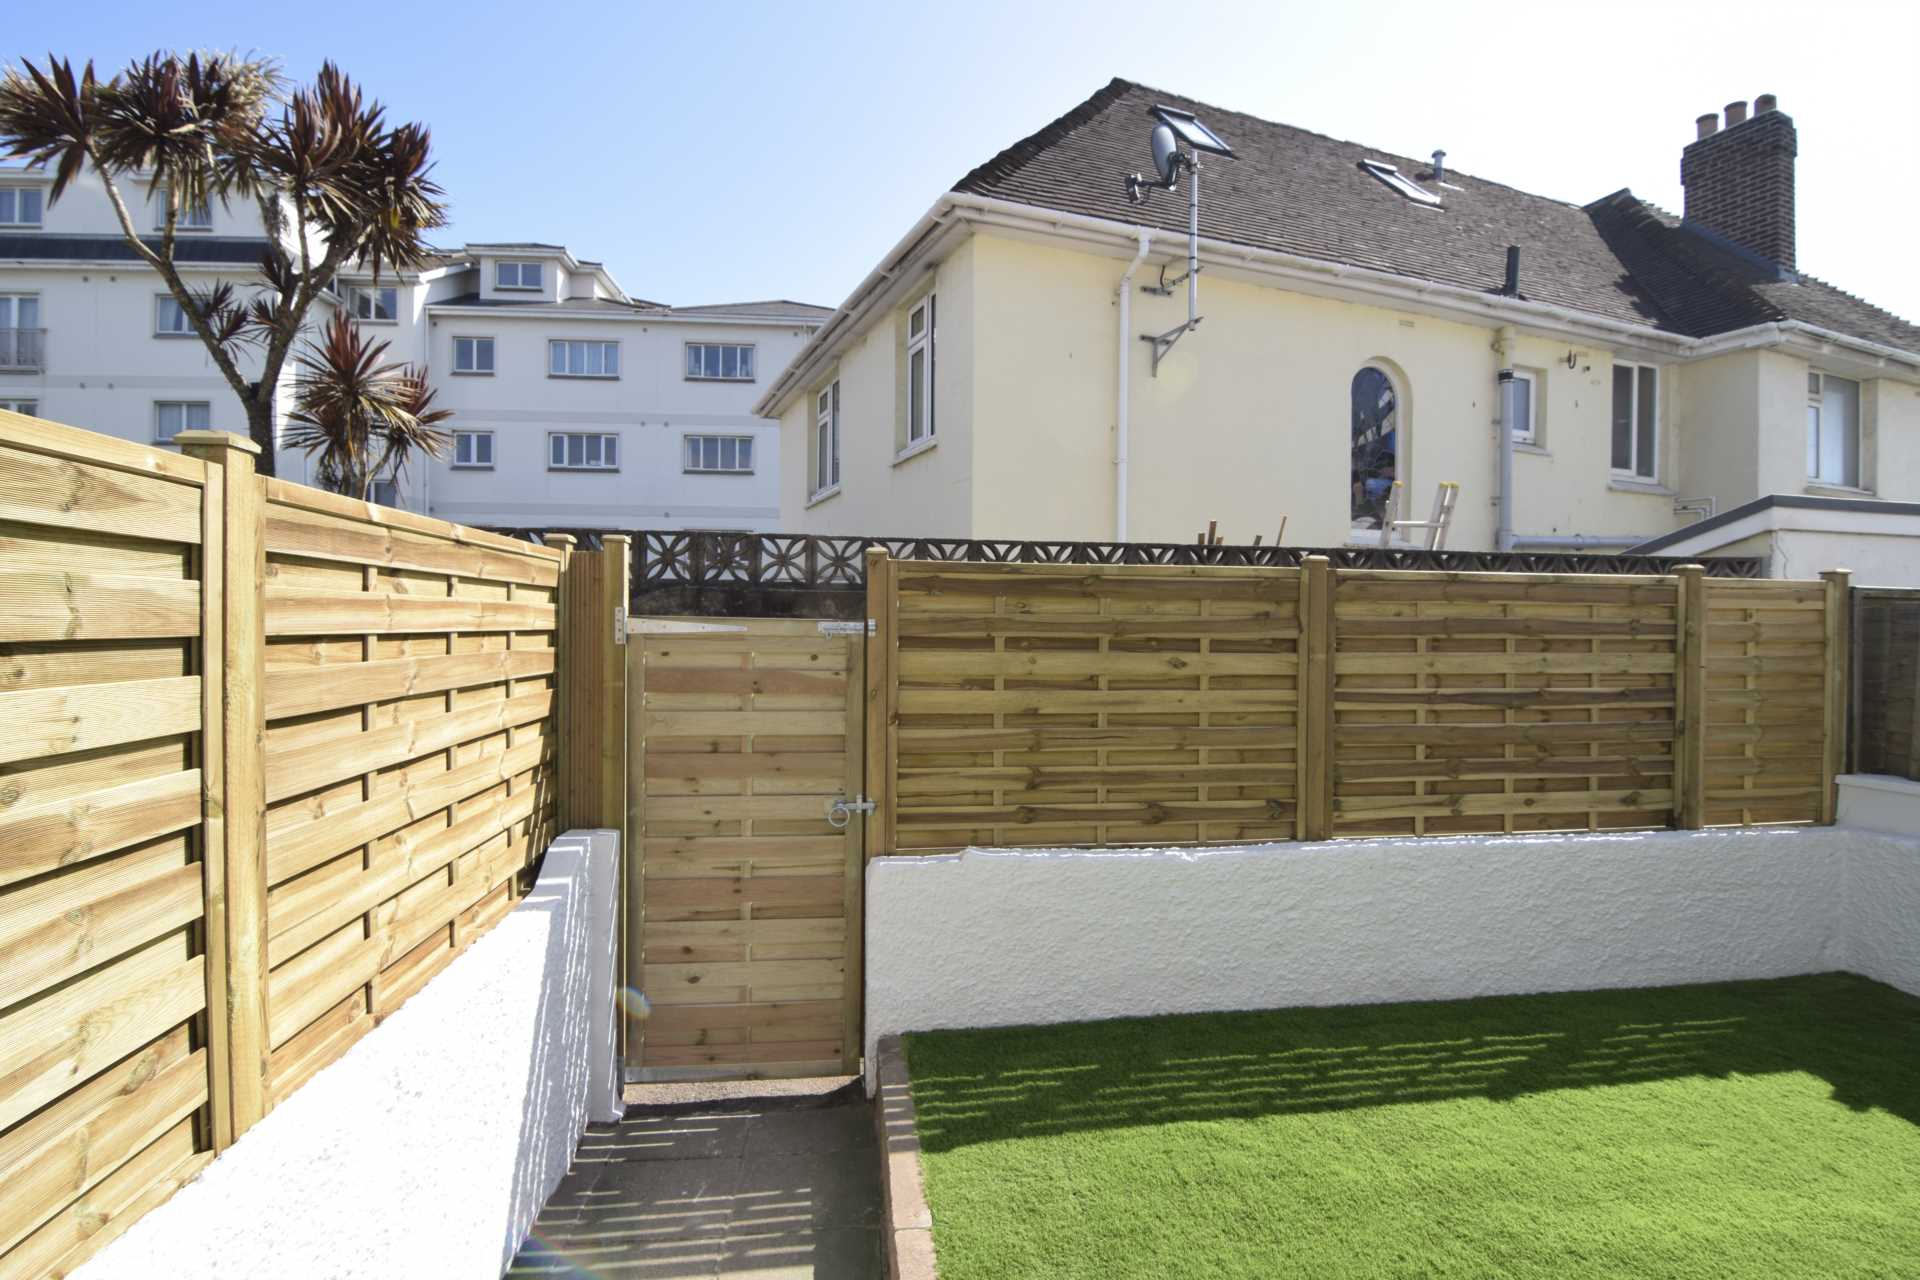 13, Beach Road, St Clement, Image 3